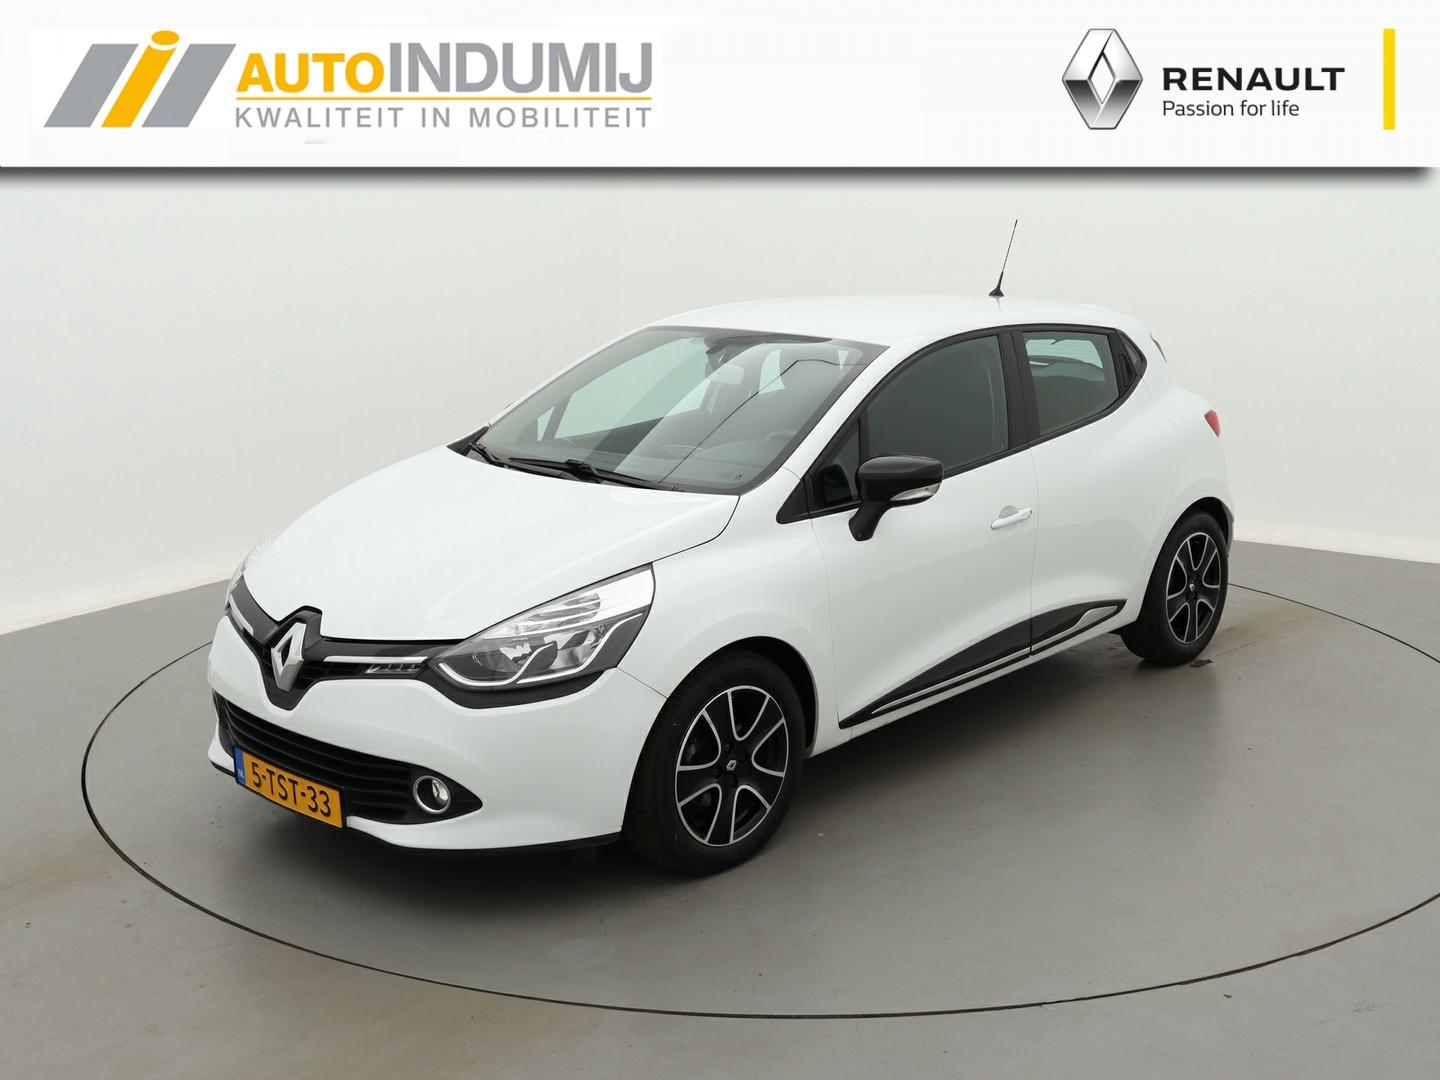 Renault Clio Tce 90 expression / airco / passion 16 inch / navigatie / bluetooth